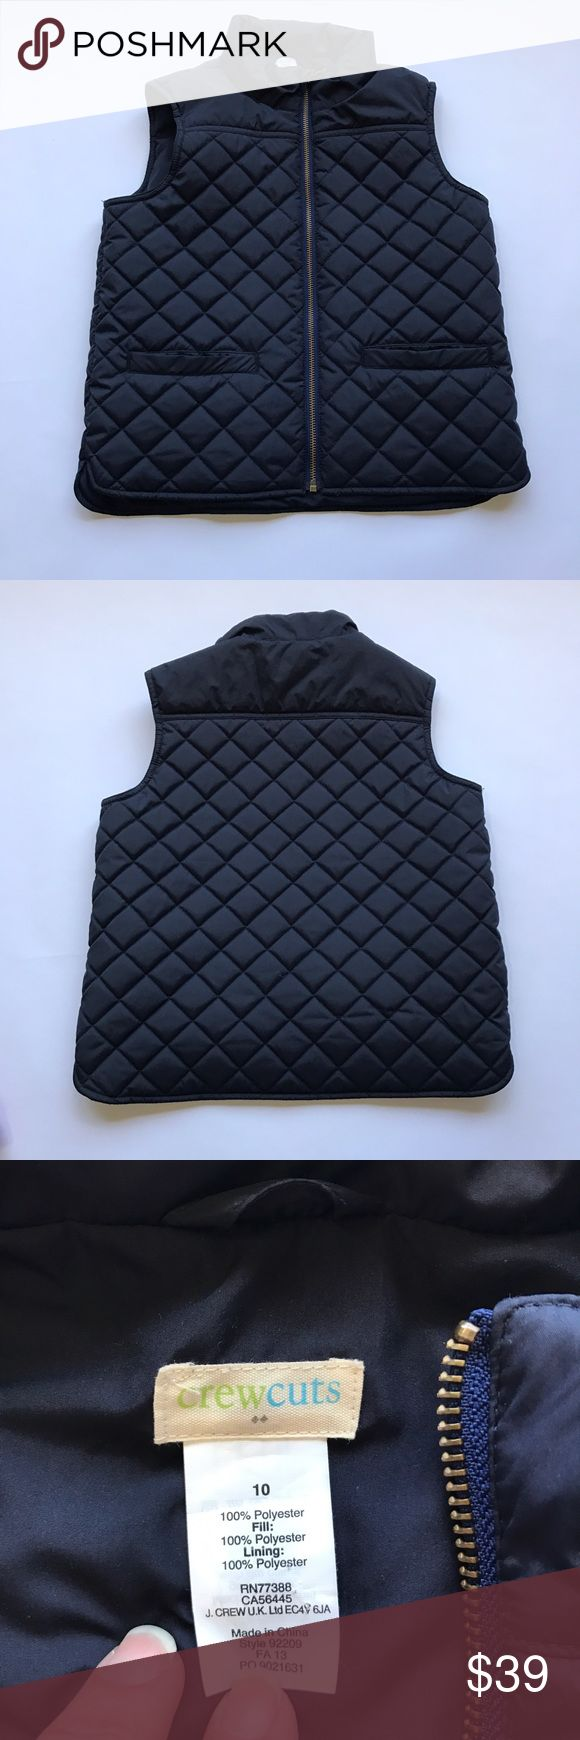 Kids J Crew Crewcuts Navy Quilted Vest size 10 Crewcuts by J Crew. Kids navy quilted full zip vest. 2 front pockets. Excellent condition, no signs of wear.  Comes from a smoke and pet free home 🏡.  Check out my other great kids clothes. You can bundle this with other items in my closet and only pay one shipping!!! Save$$$$ J. Crew Jackets & Coats Vests